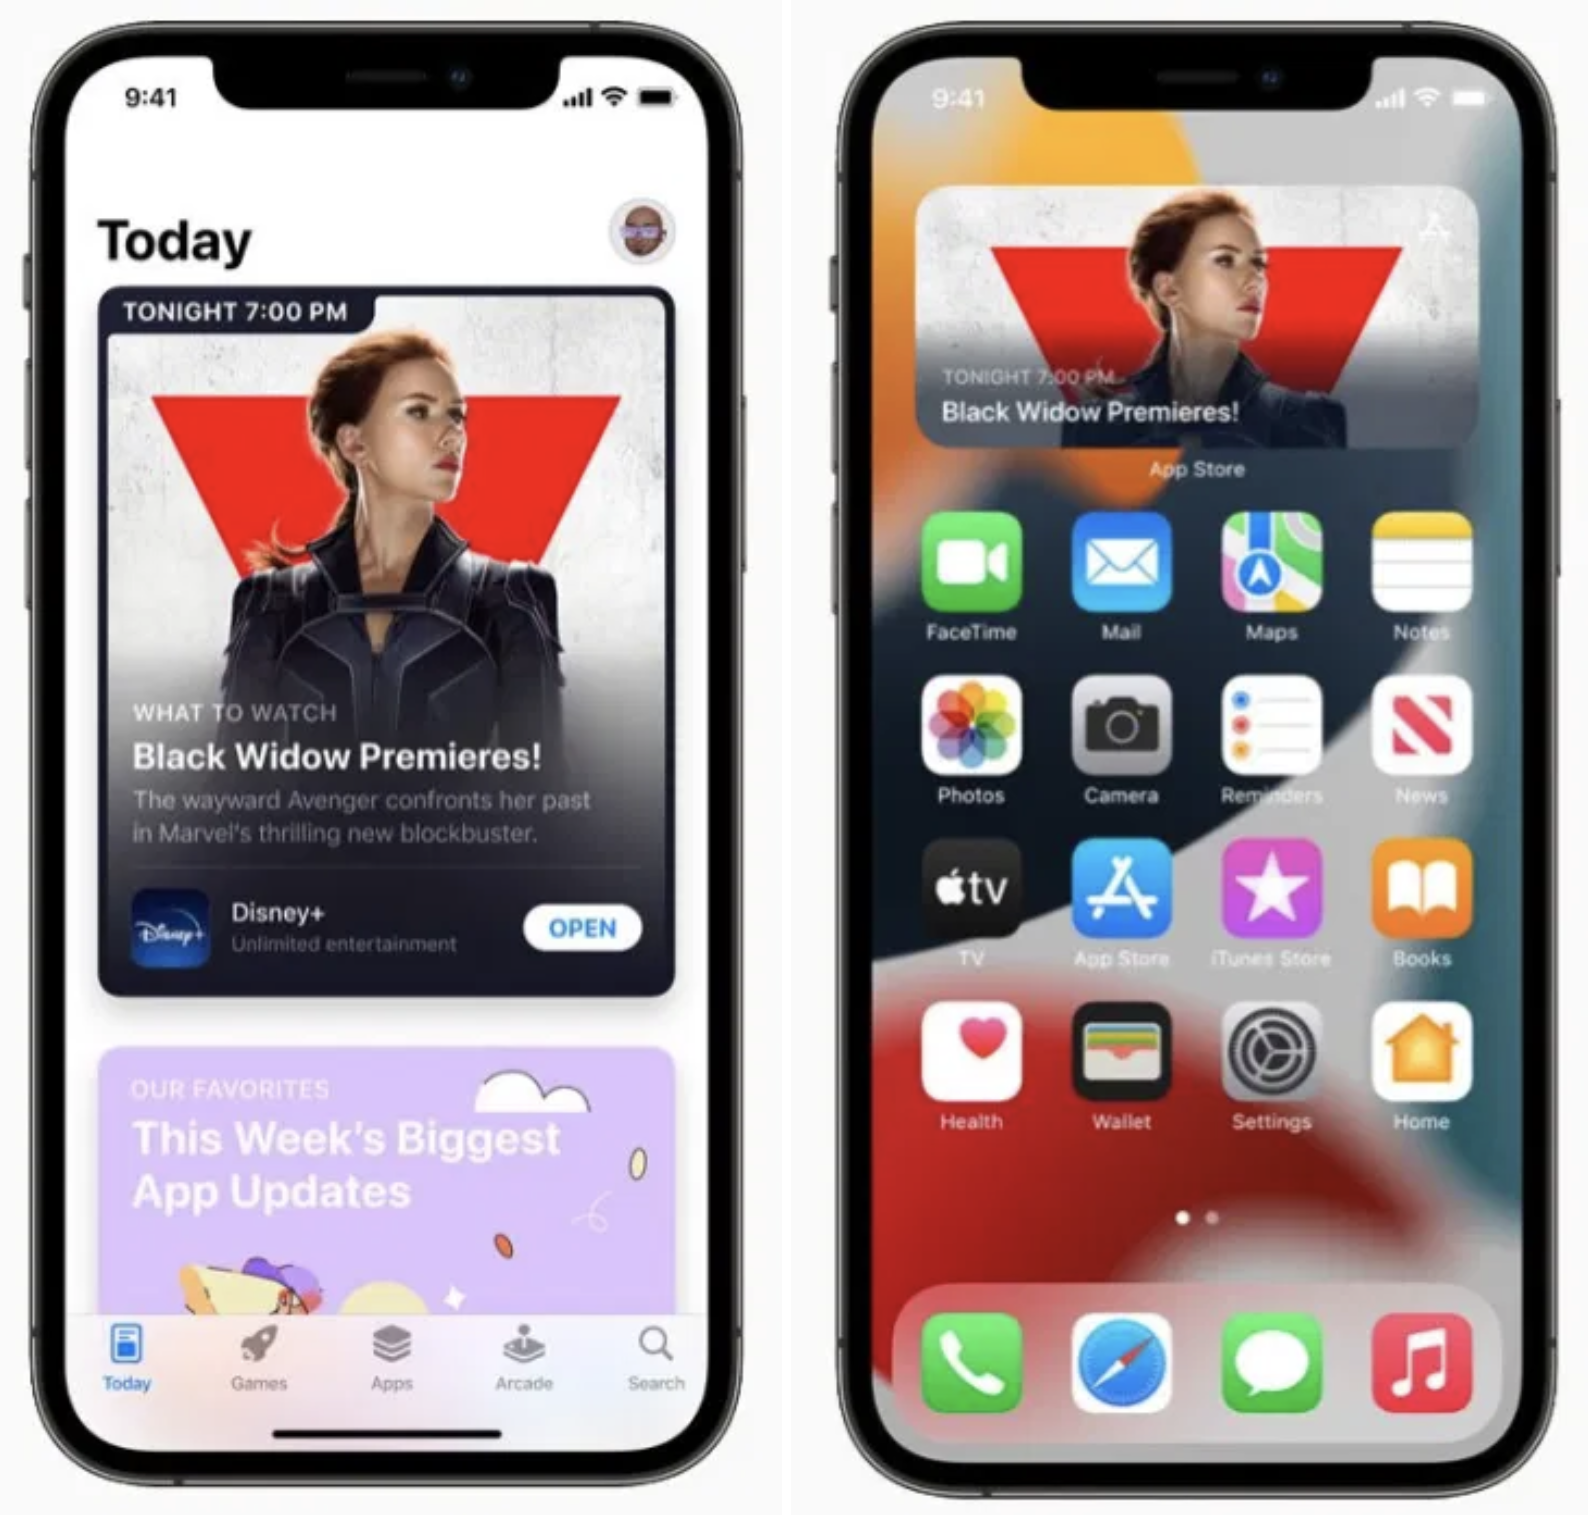 new App Store features